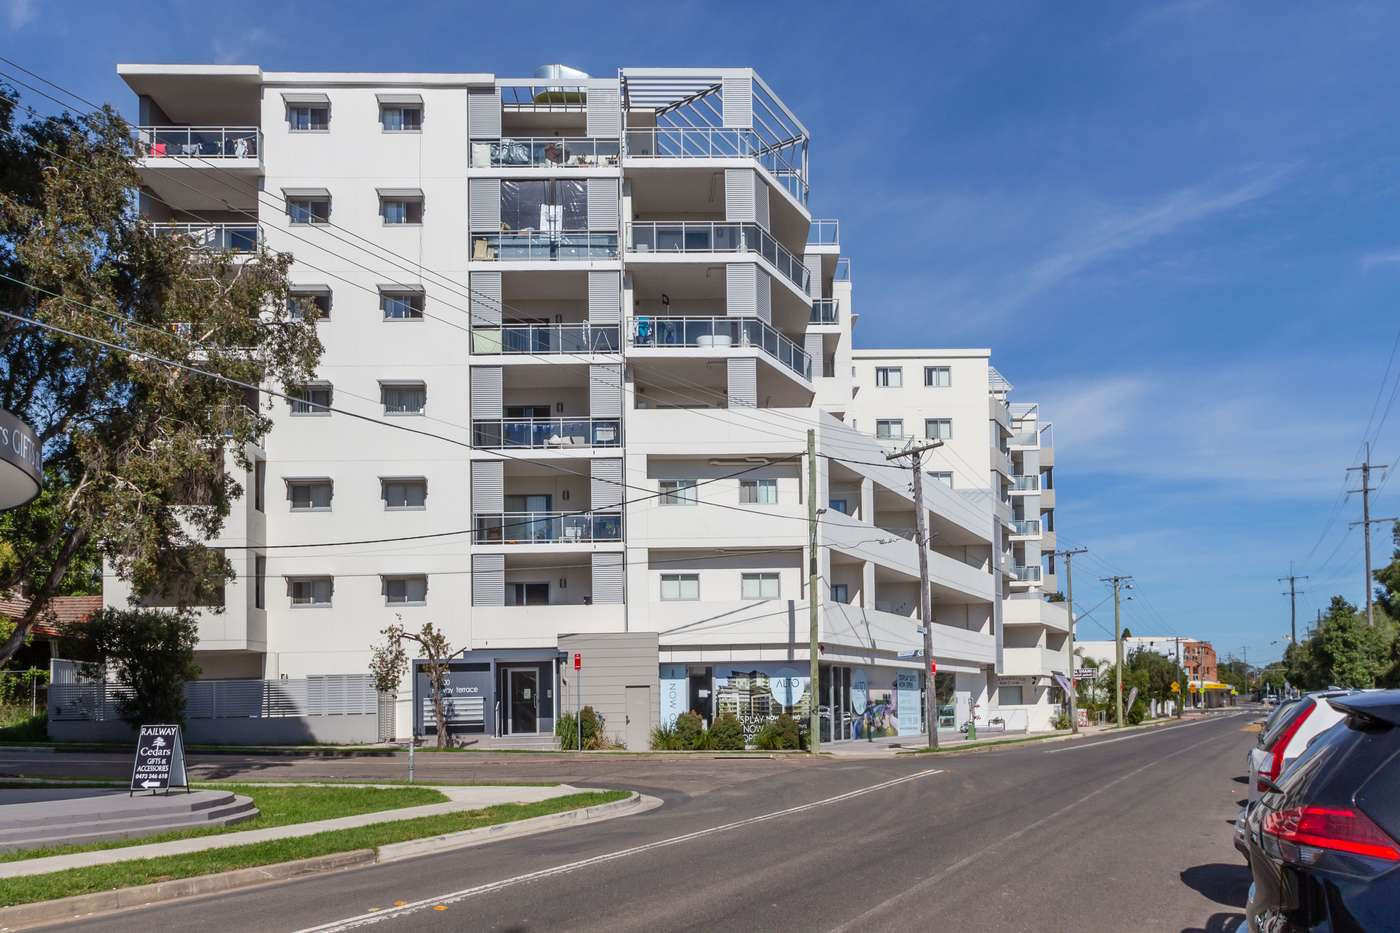 Main view of Homely unit listing, 202/100 Railway Terrace, Merrylands, NSW 2160